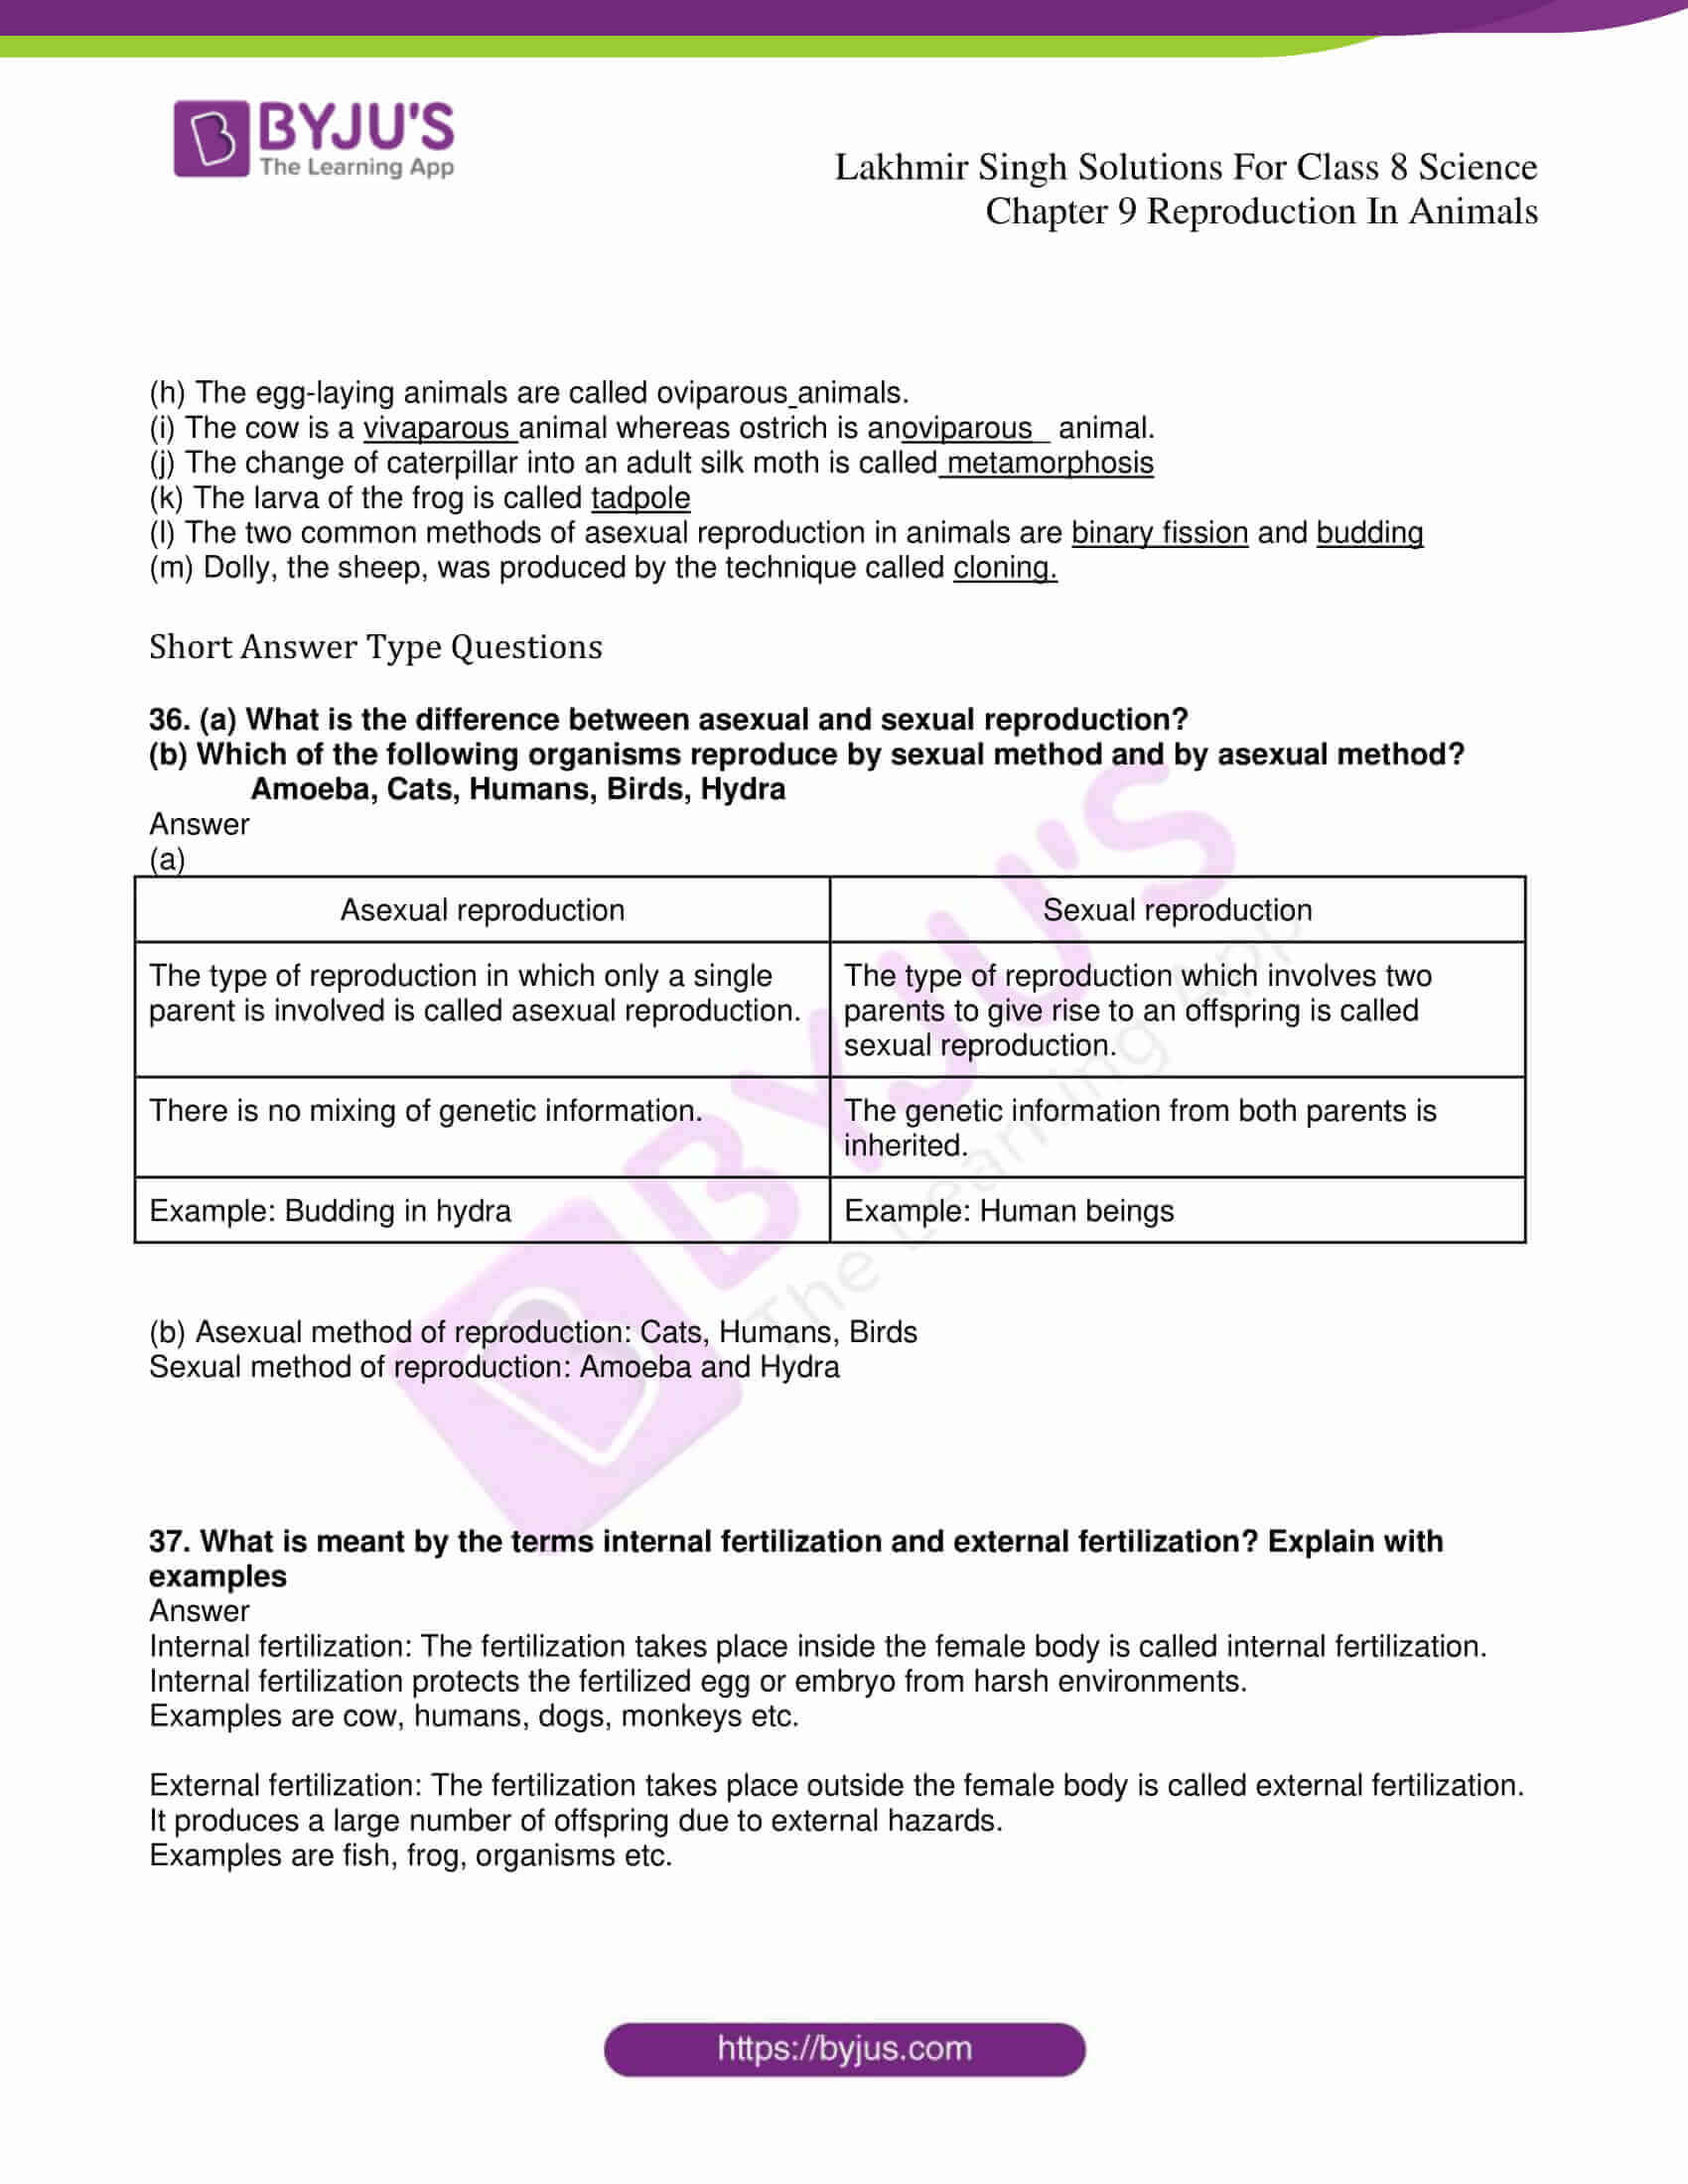 lakhmir singh solutions for class 8 science chapter 9 07